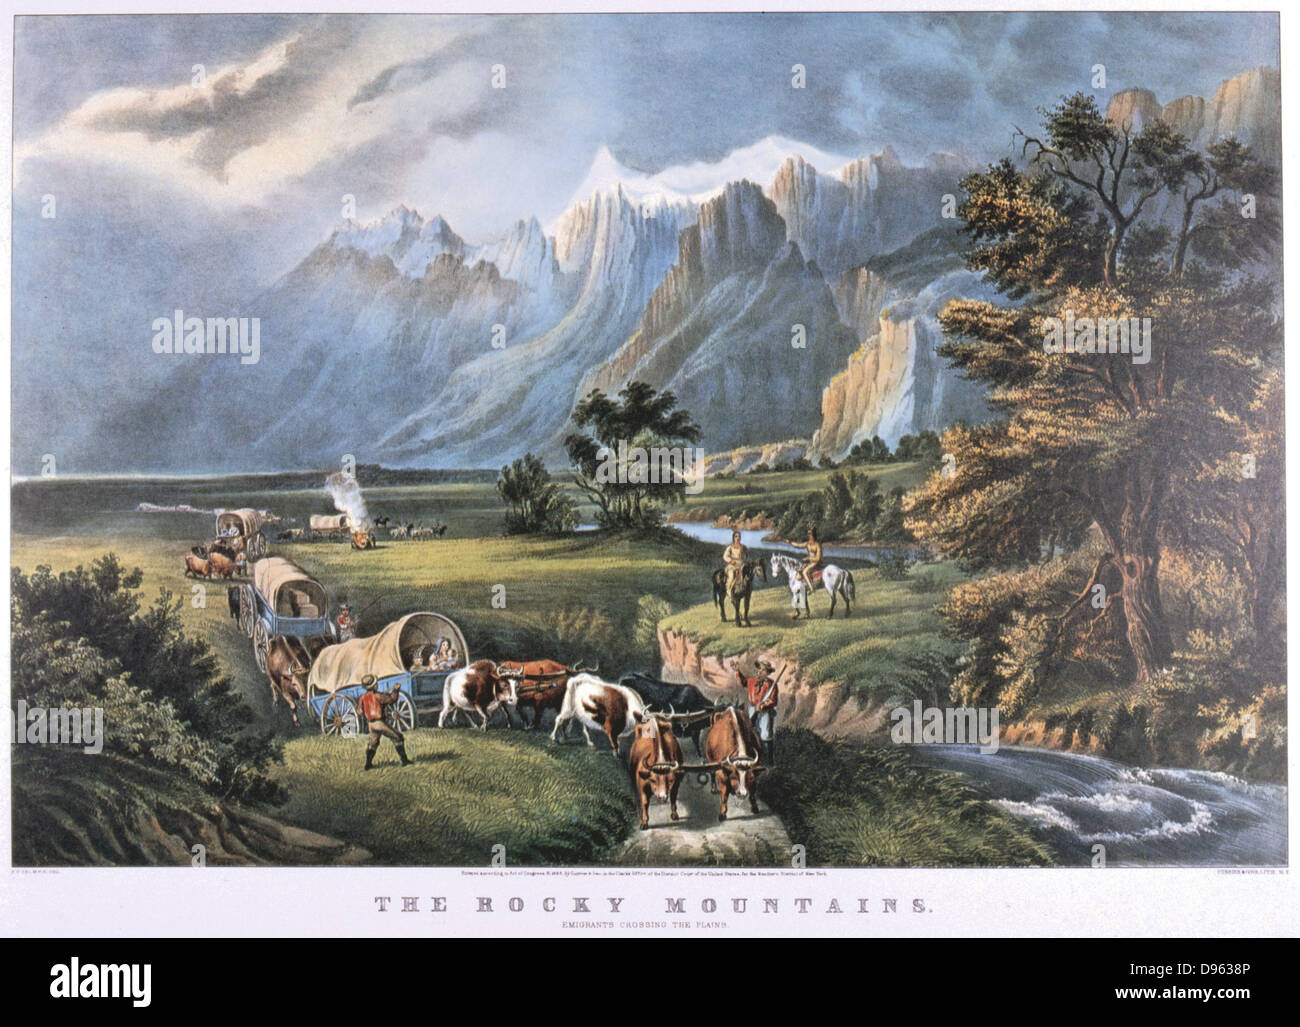 The Rocky Mountains. Emigrants in covered wagons crossing the Plains watched by Native Americans.  Lithograph by - Stock Image